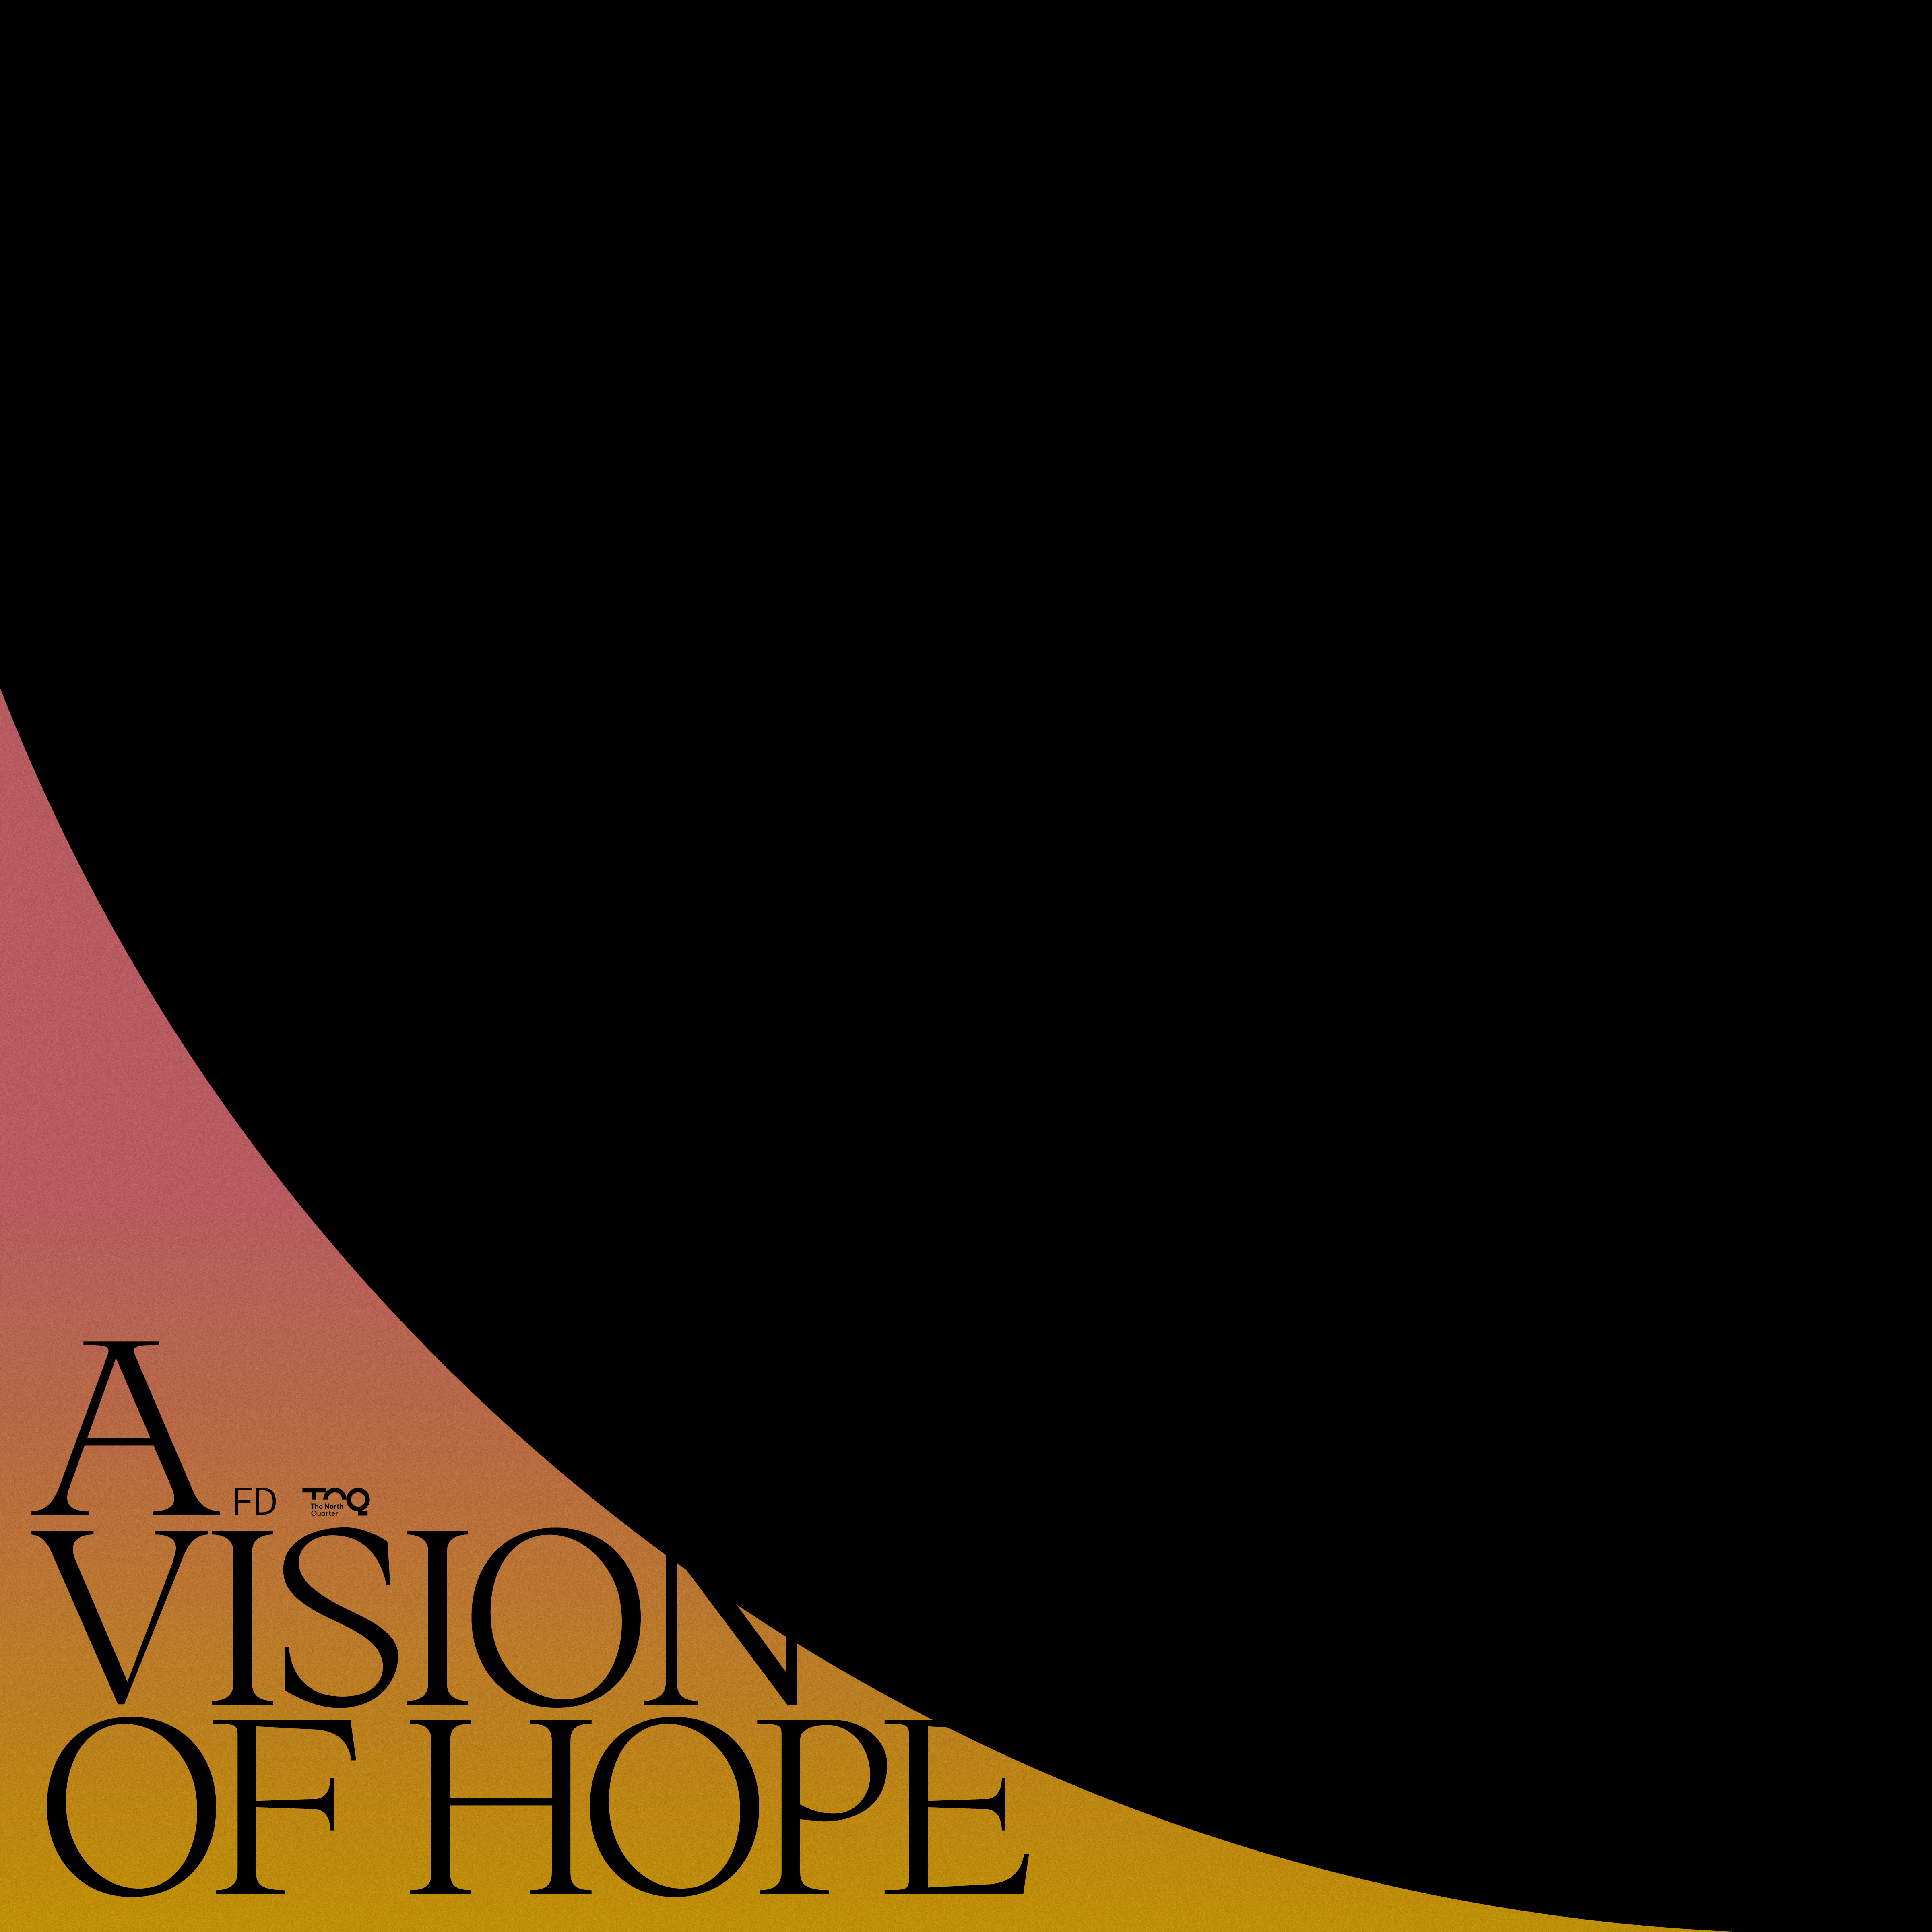 A Vision Of Hope EP Image